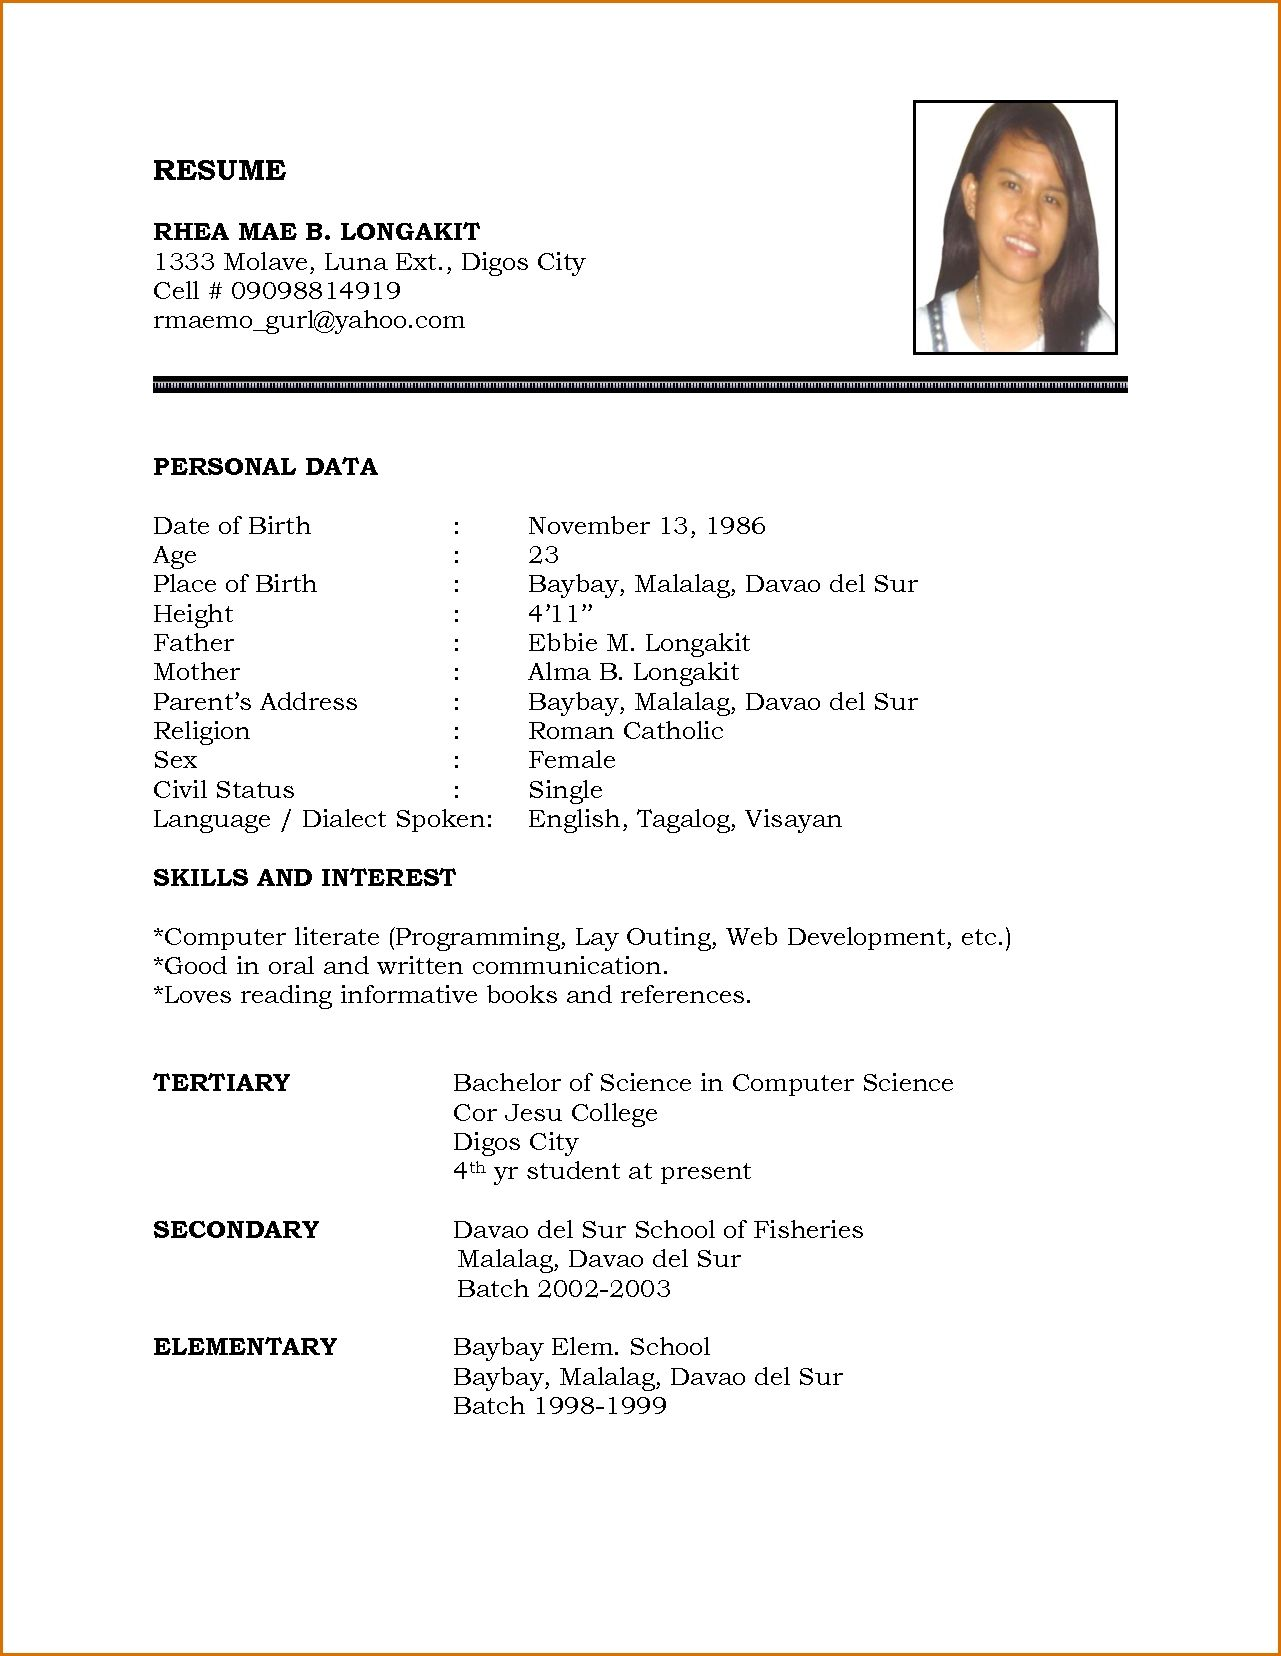 Free Resume Templates India Resume Examples Job Resume Format Simple Resume Format Best Resume Format